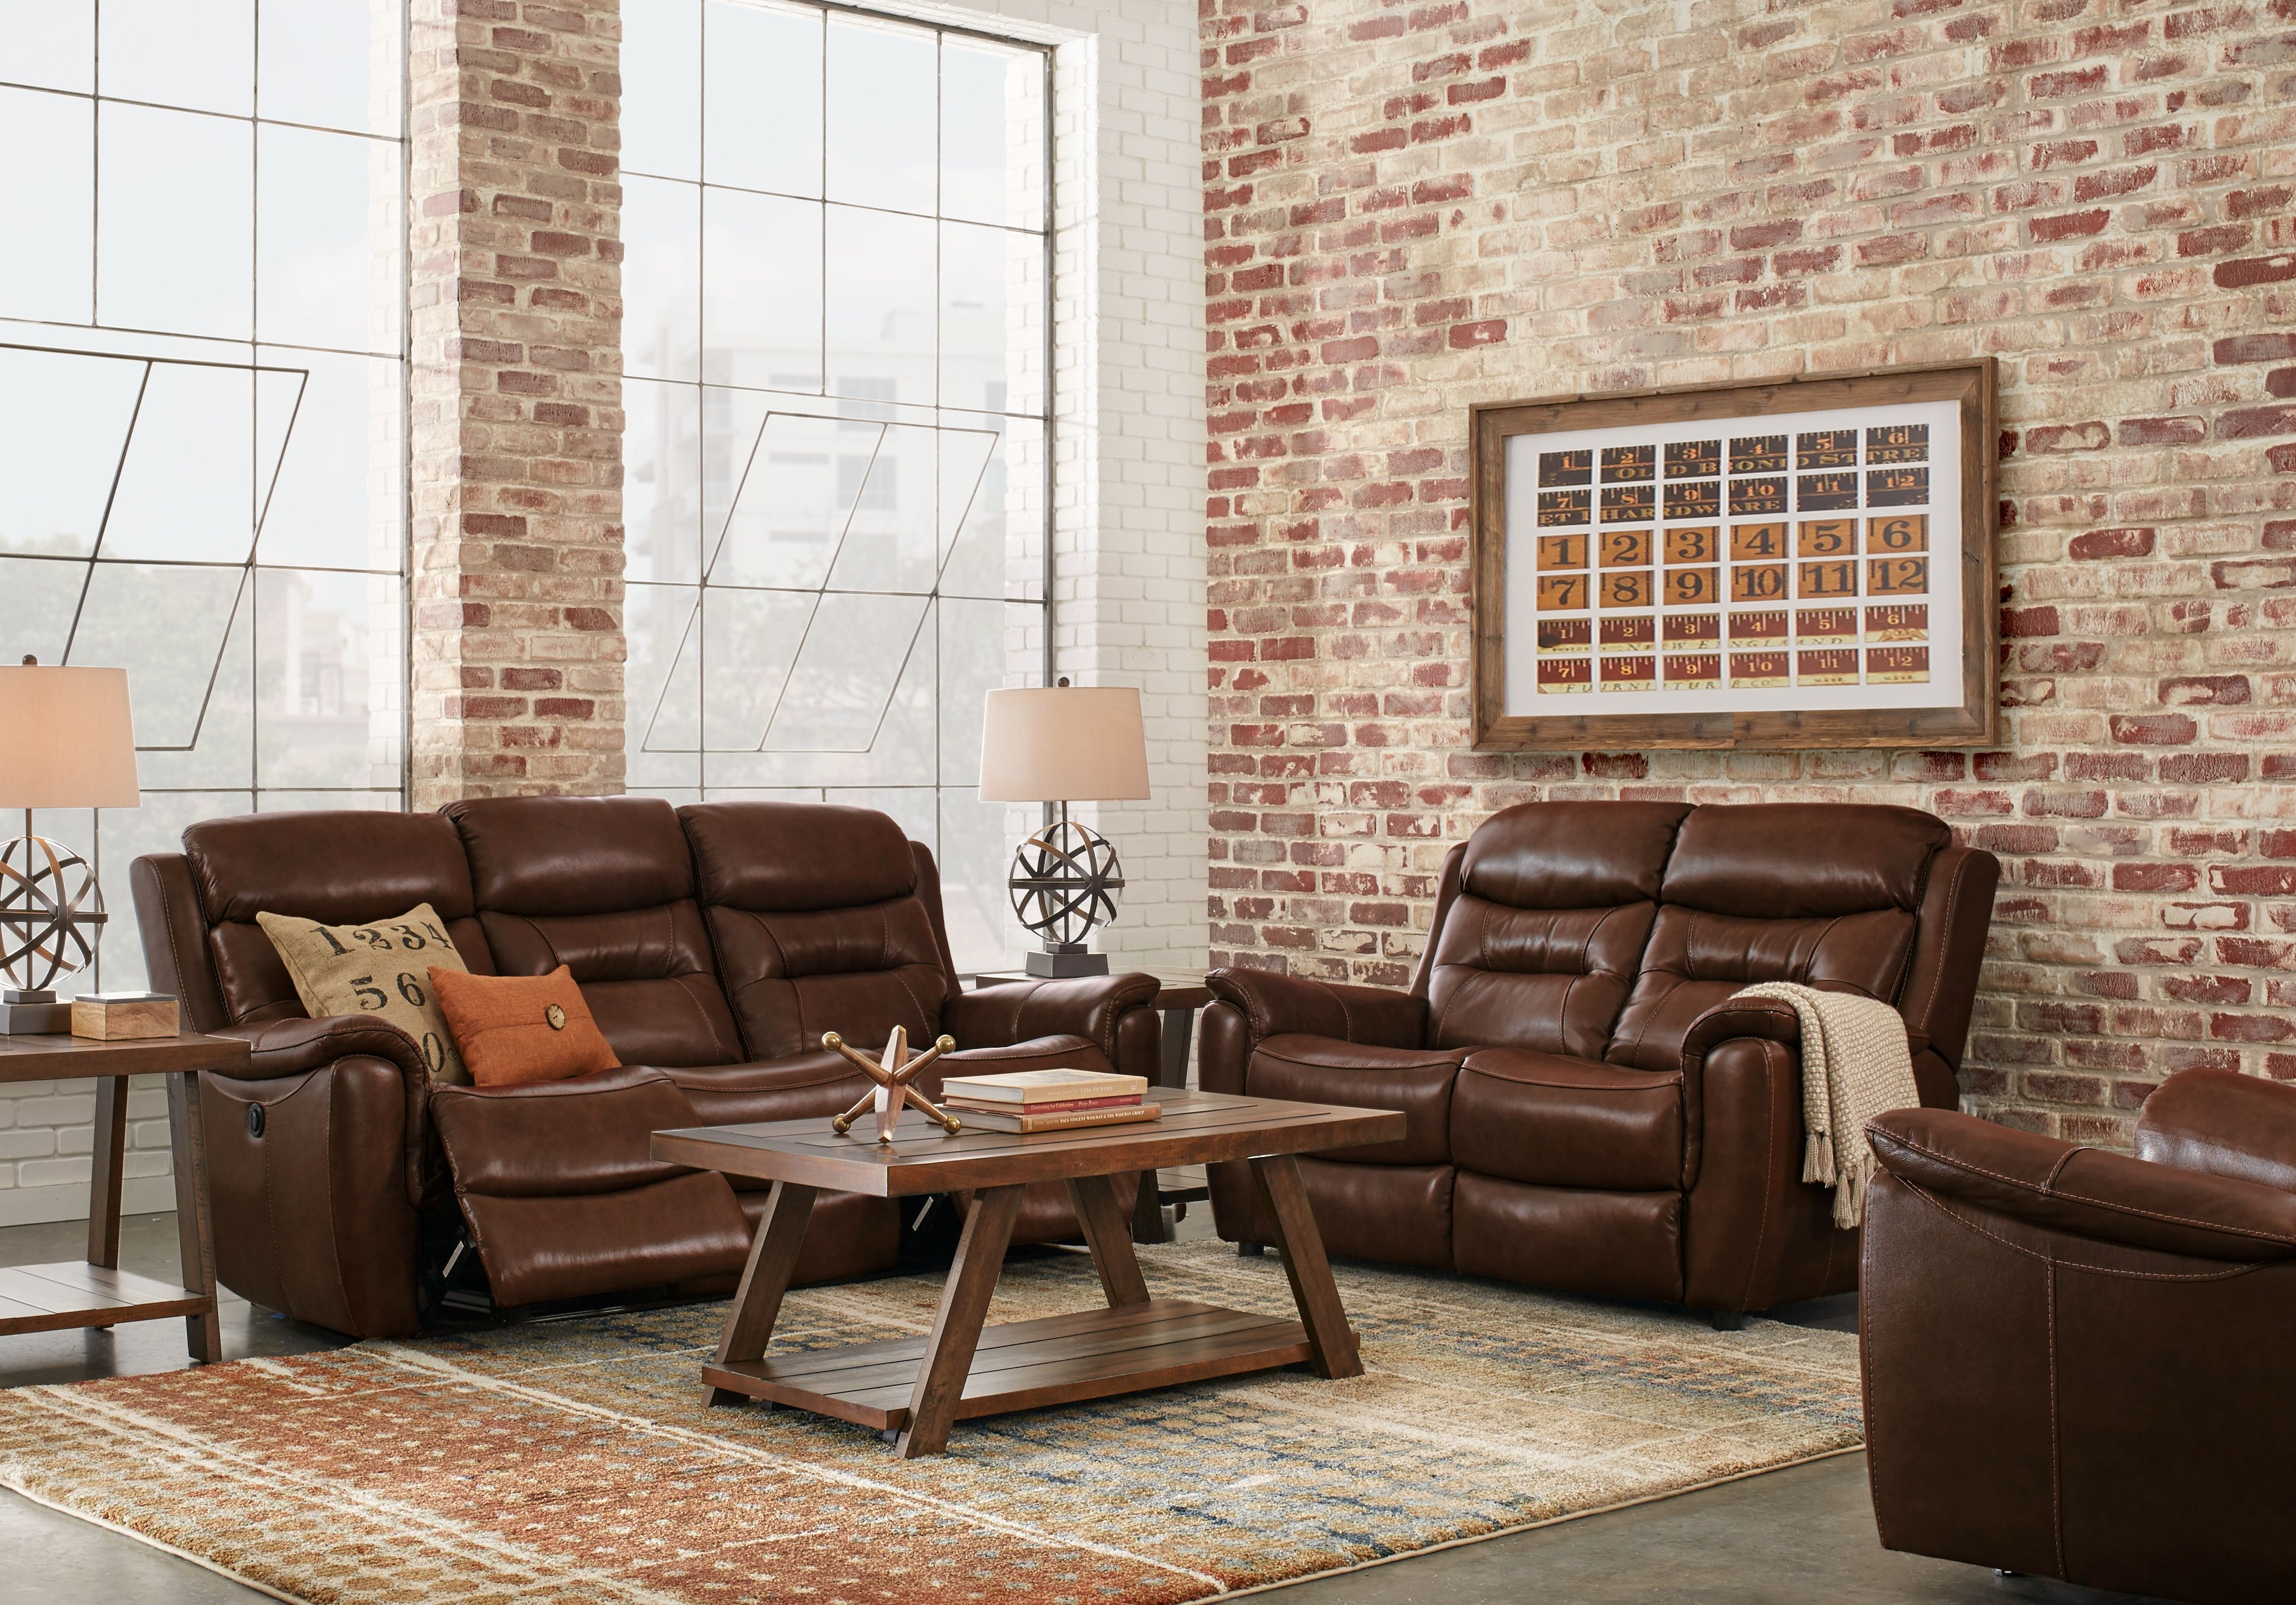 Sabella Walnut Leather 3 Pc Living Room With Reclining Sofa 1977 0 3pc Set Includes Reclining Living Room Sets Furniture Living Room Leather Living Room Sets